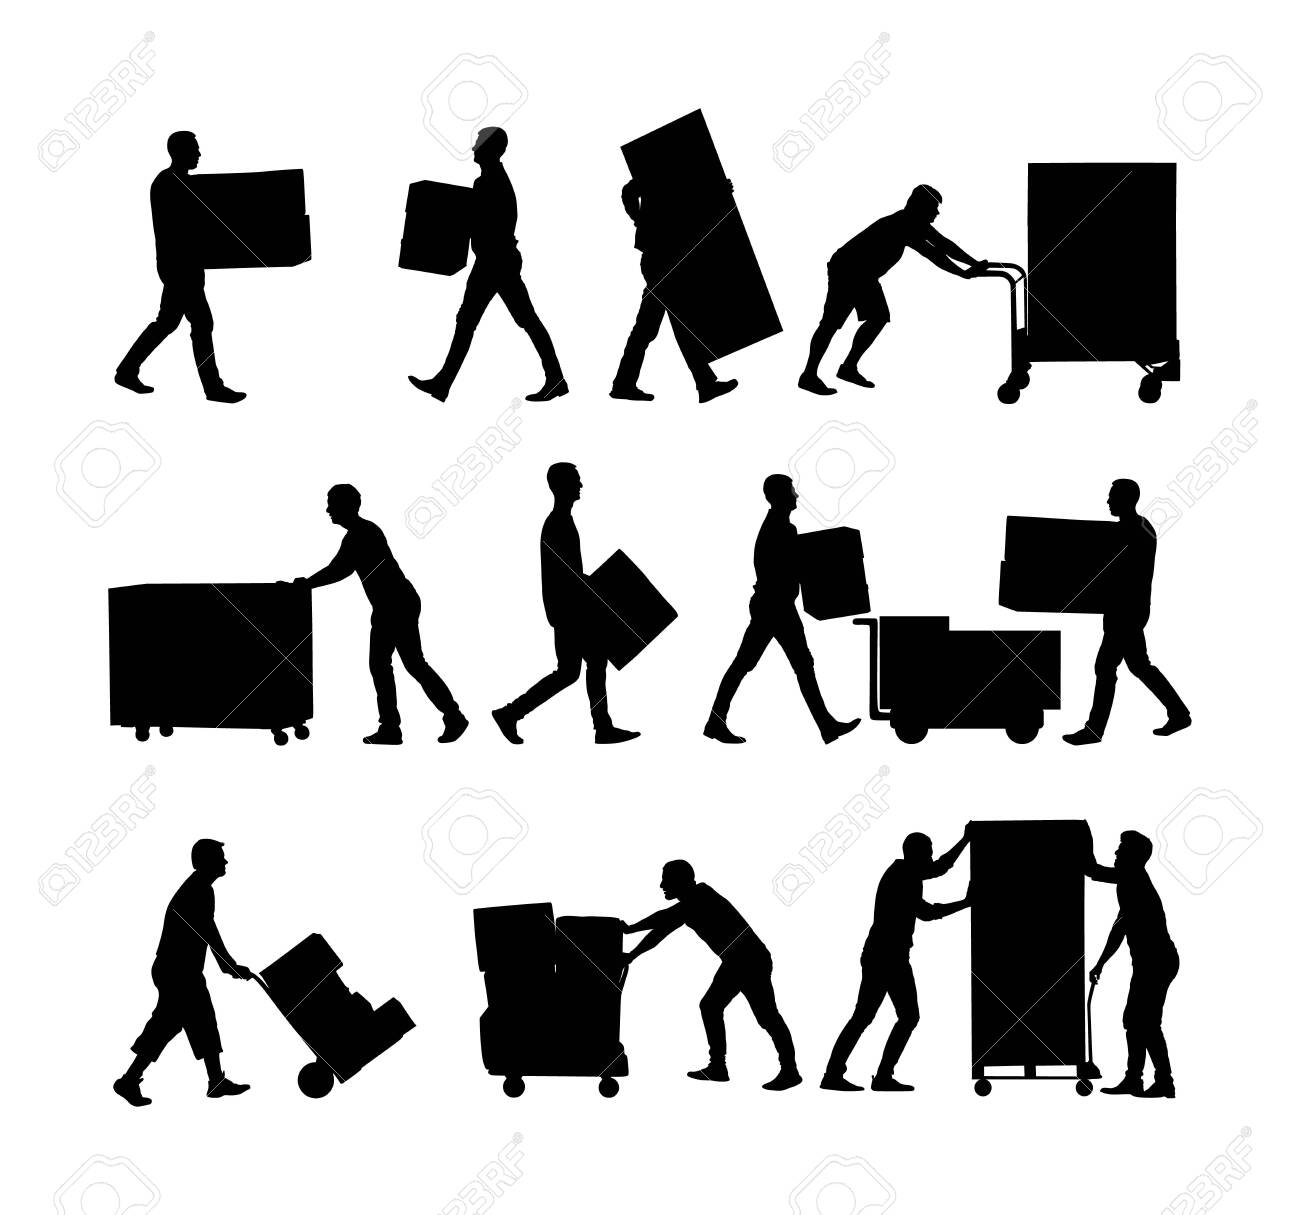 Delivery man carrying boxes of goods vector silhouette. Post man with package. Distribution procurement. Boy holding heavy load for moving service. Handy man in move action. Hand transportation method - 123770169